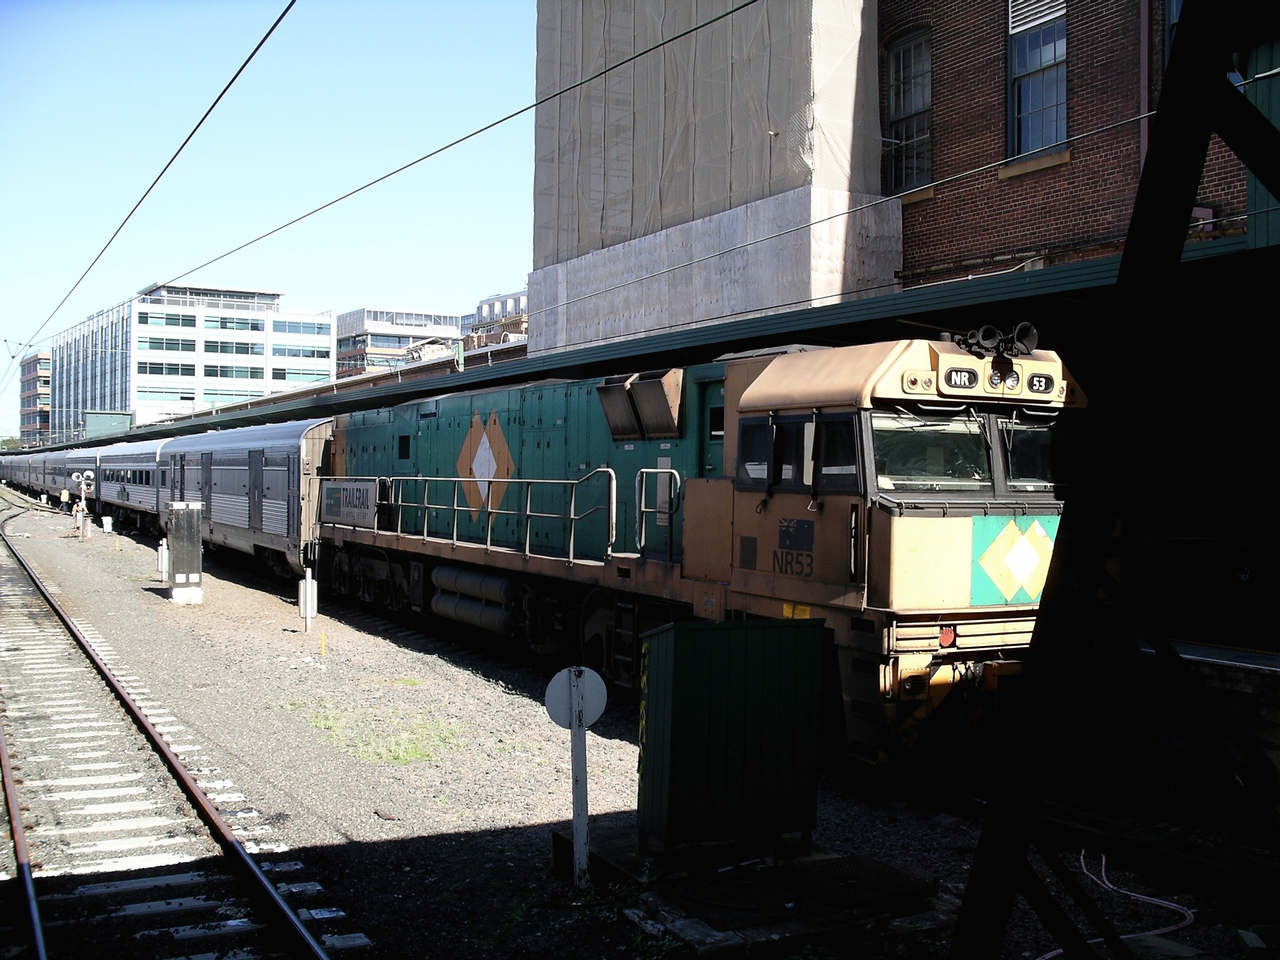 Our train stands at Sydney Central station after arrival • The Indian Pacific train, which carried us from Perth to Sydney, pulled in at Central on the third day after we had left Perth.